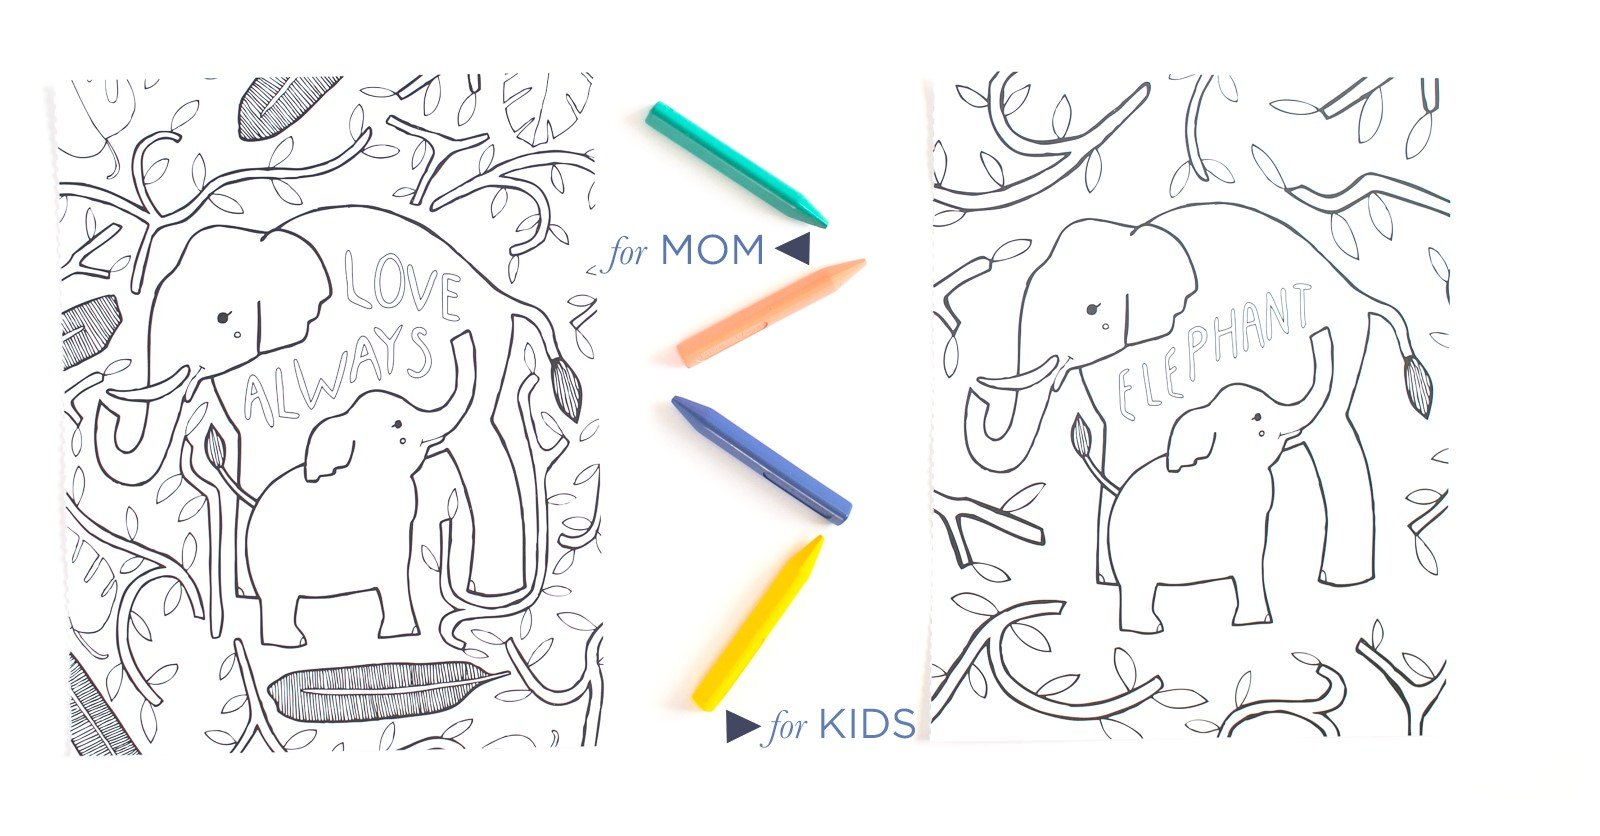 Coloring book for me premium free download - Together A Mommy Me Coloring Book Stacie Bloomfield Paige Tate Select 9781944515355 Amazon Com Books